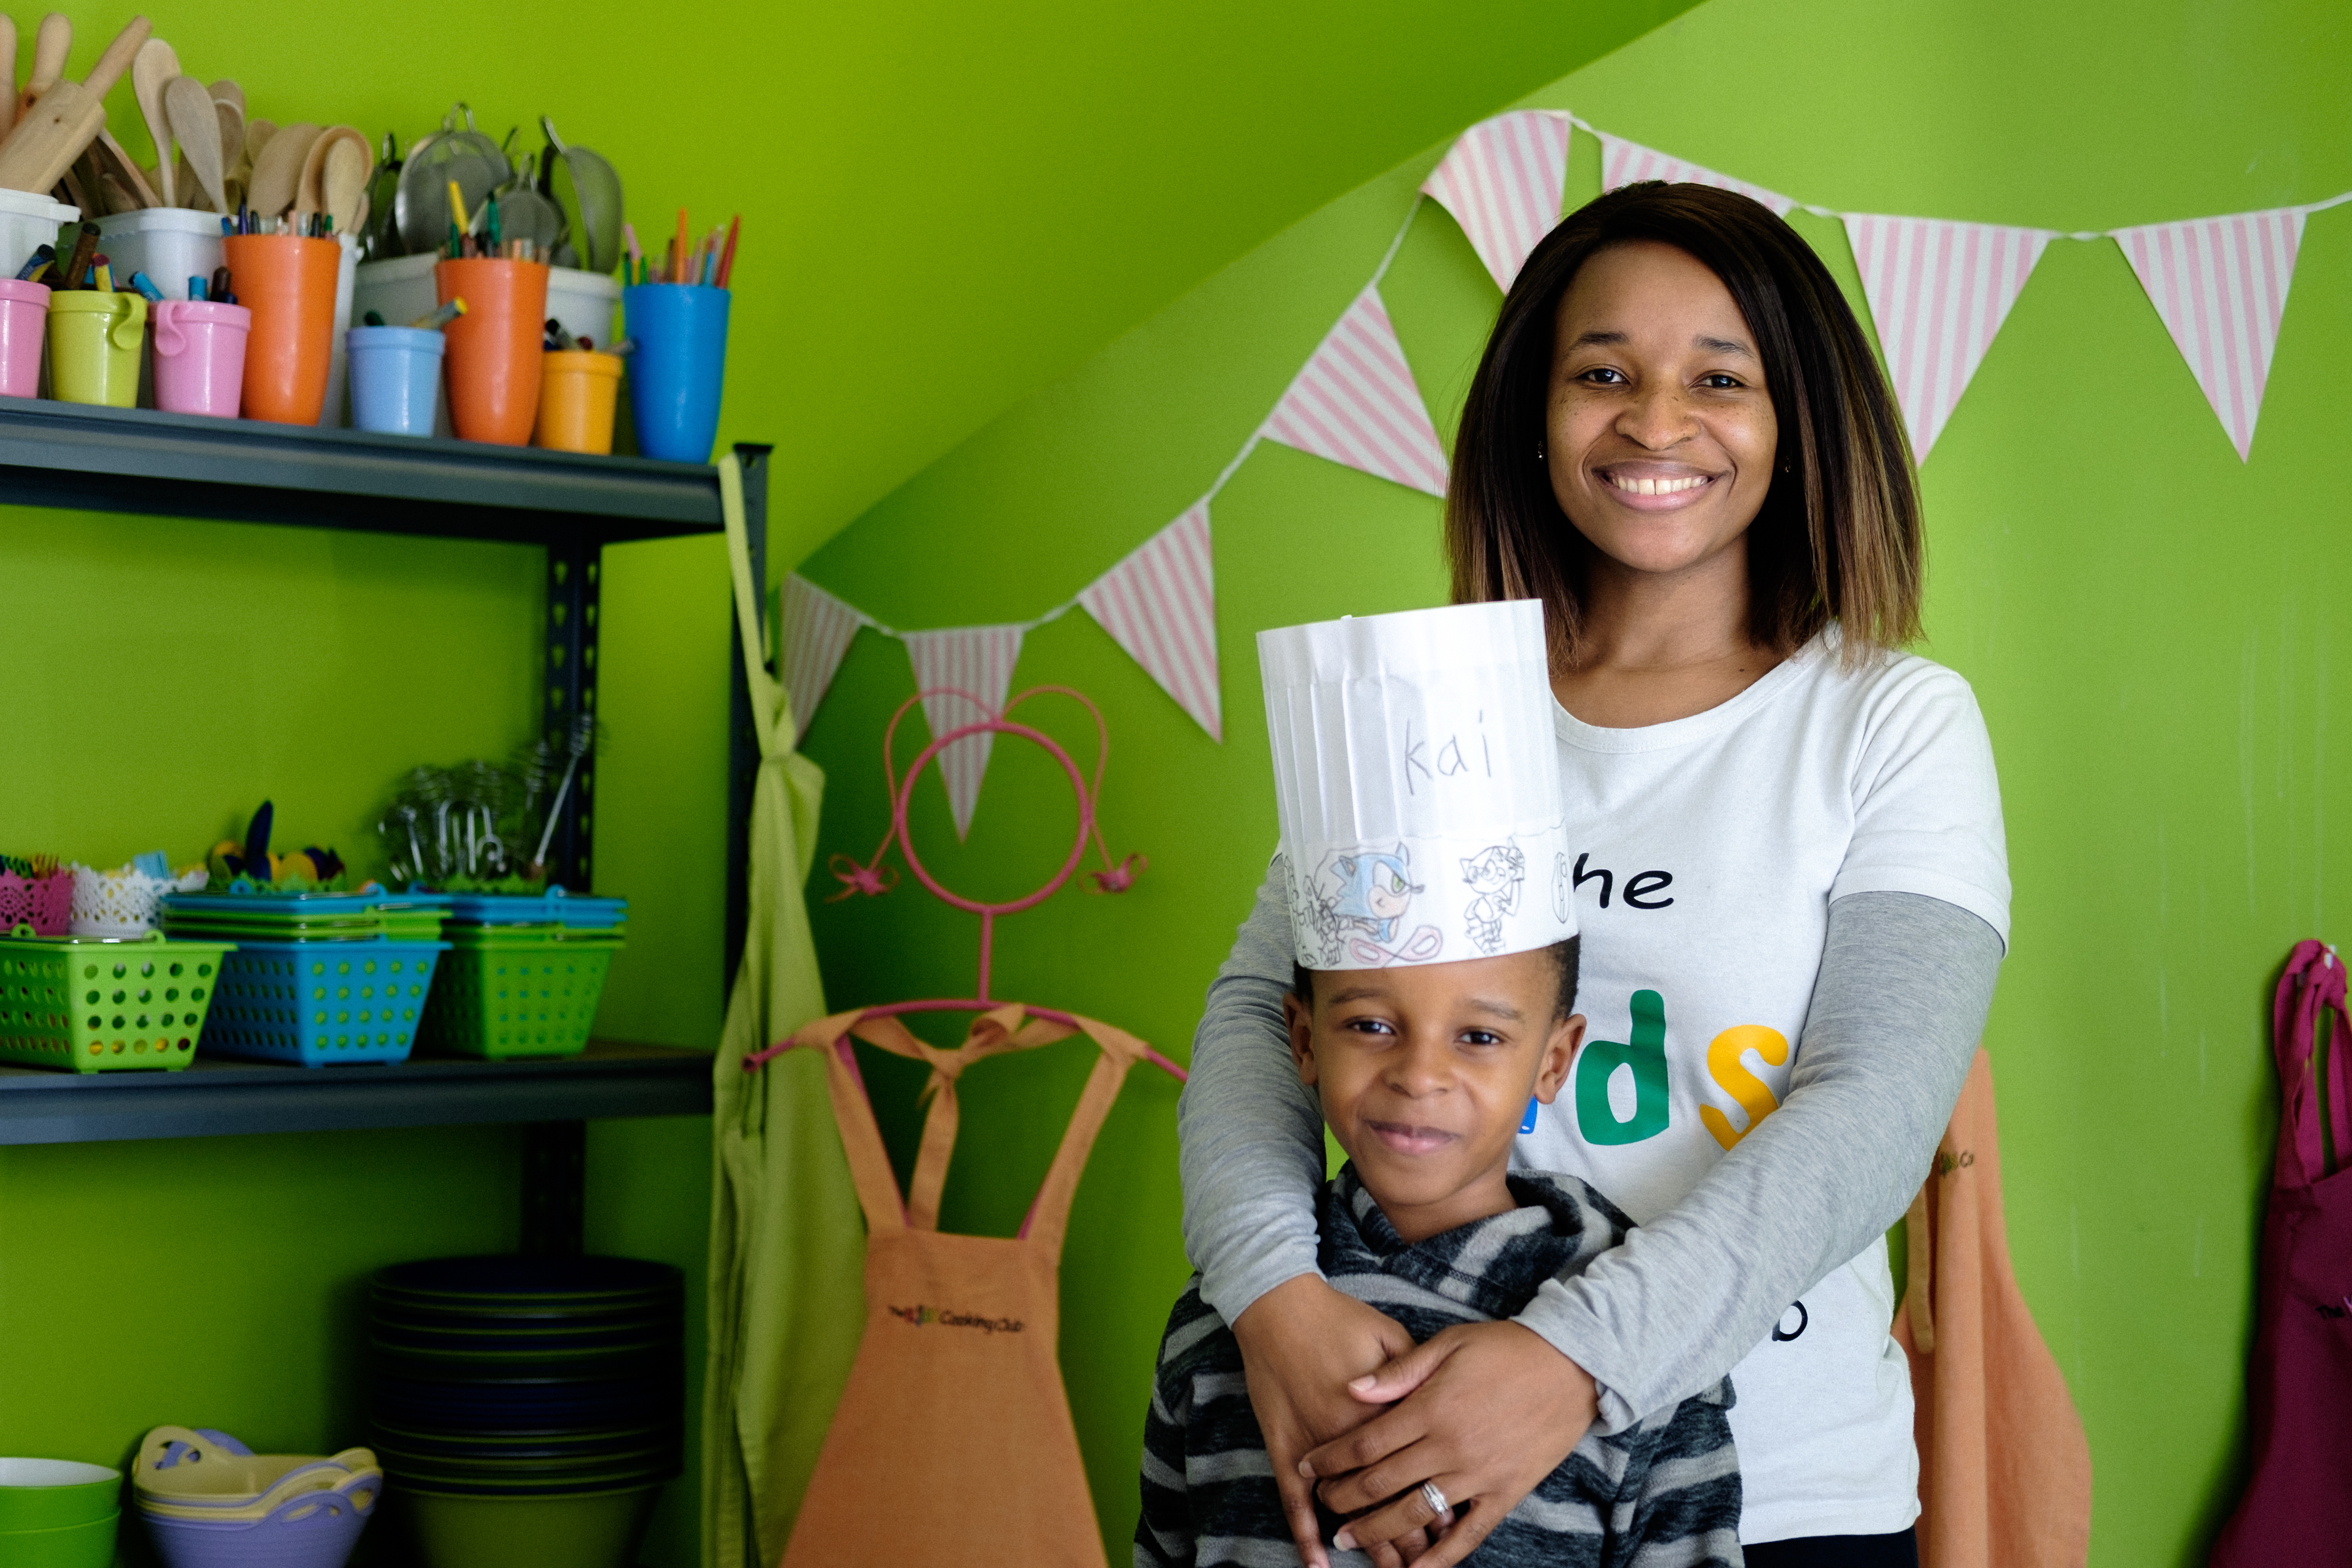 Mondisa, a client of Lulalend, can access capital to grow her business and enrich the lives of many more children.